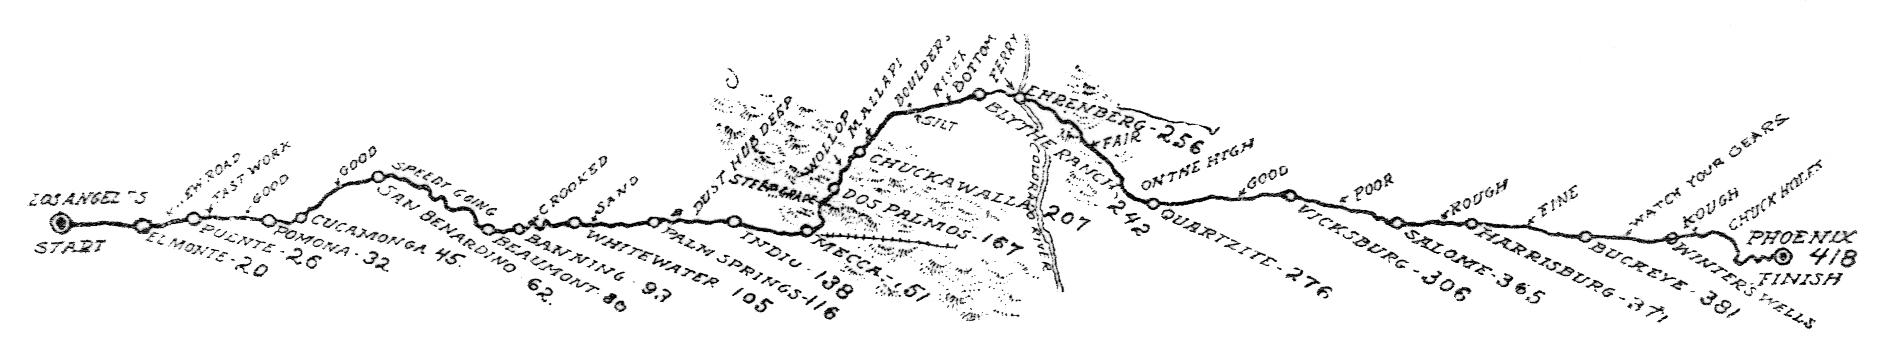 1910 Los Angeles to Phoenix Race route